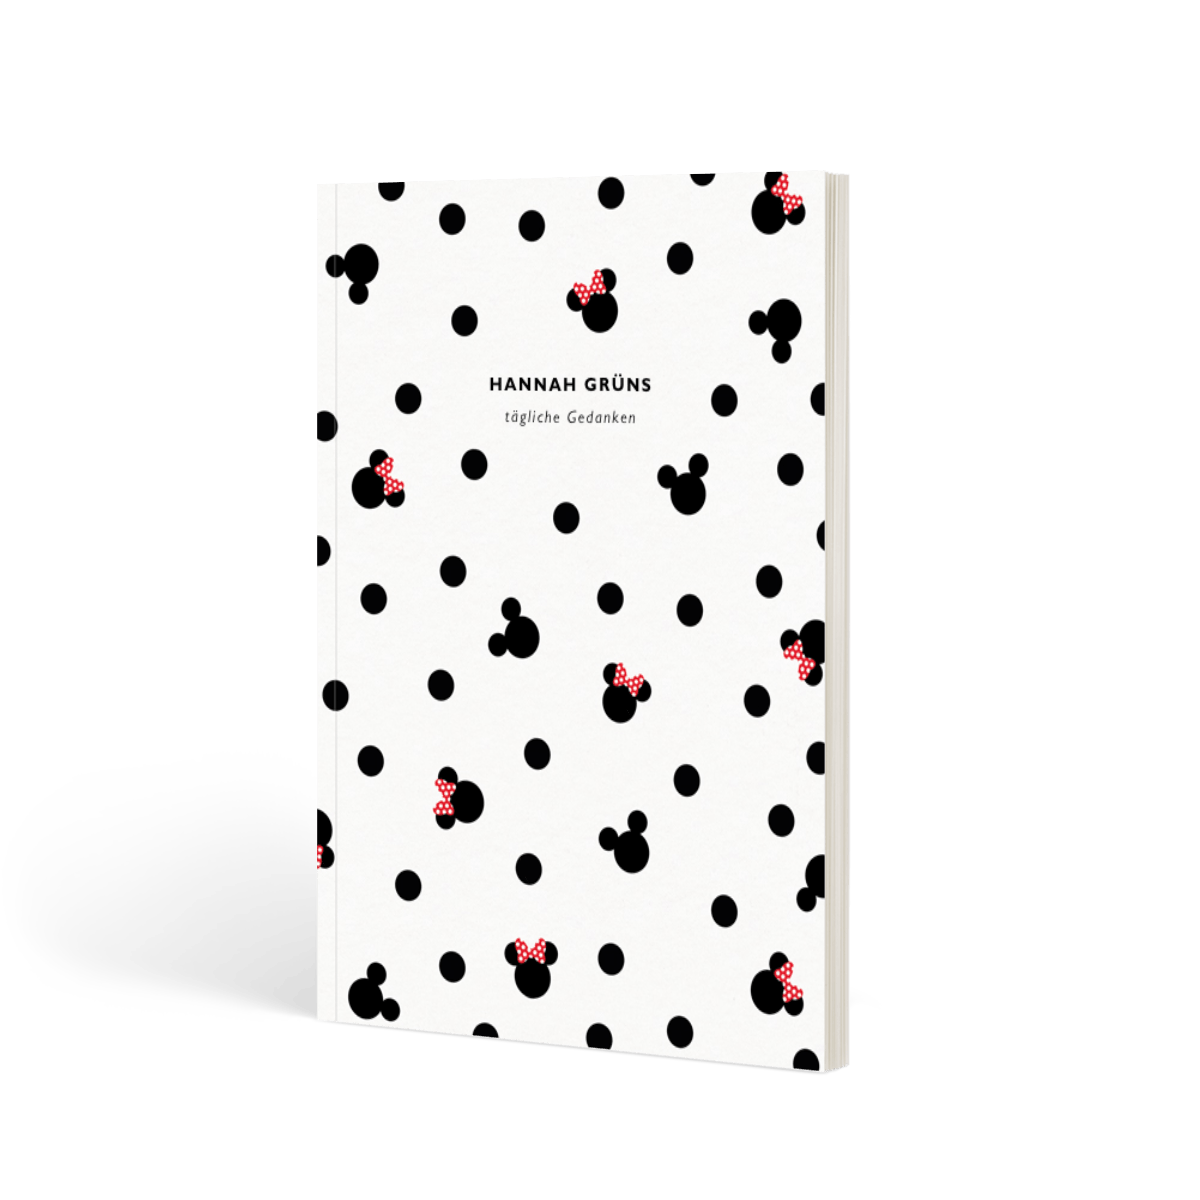 Https%3a%2f%2fwww.papier.com%2fproduct image%2f55823%2f6%2fmickey minnie mouse 13406 vorderseite 1542299841.png?ixlib=rb 1.1